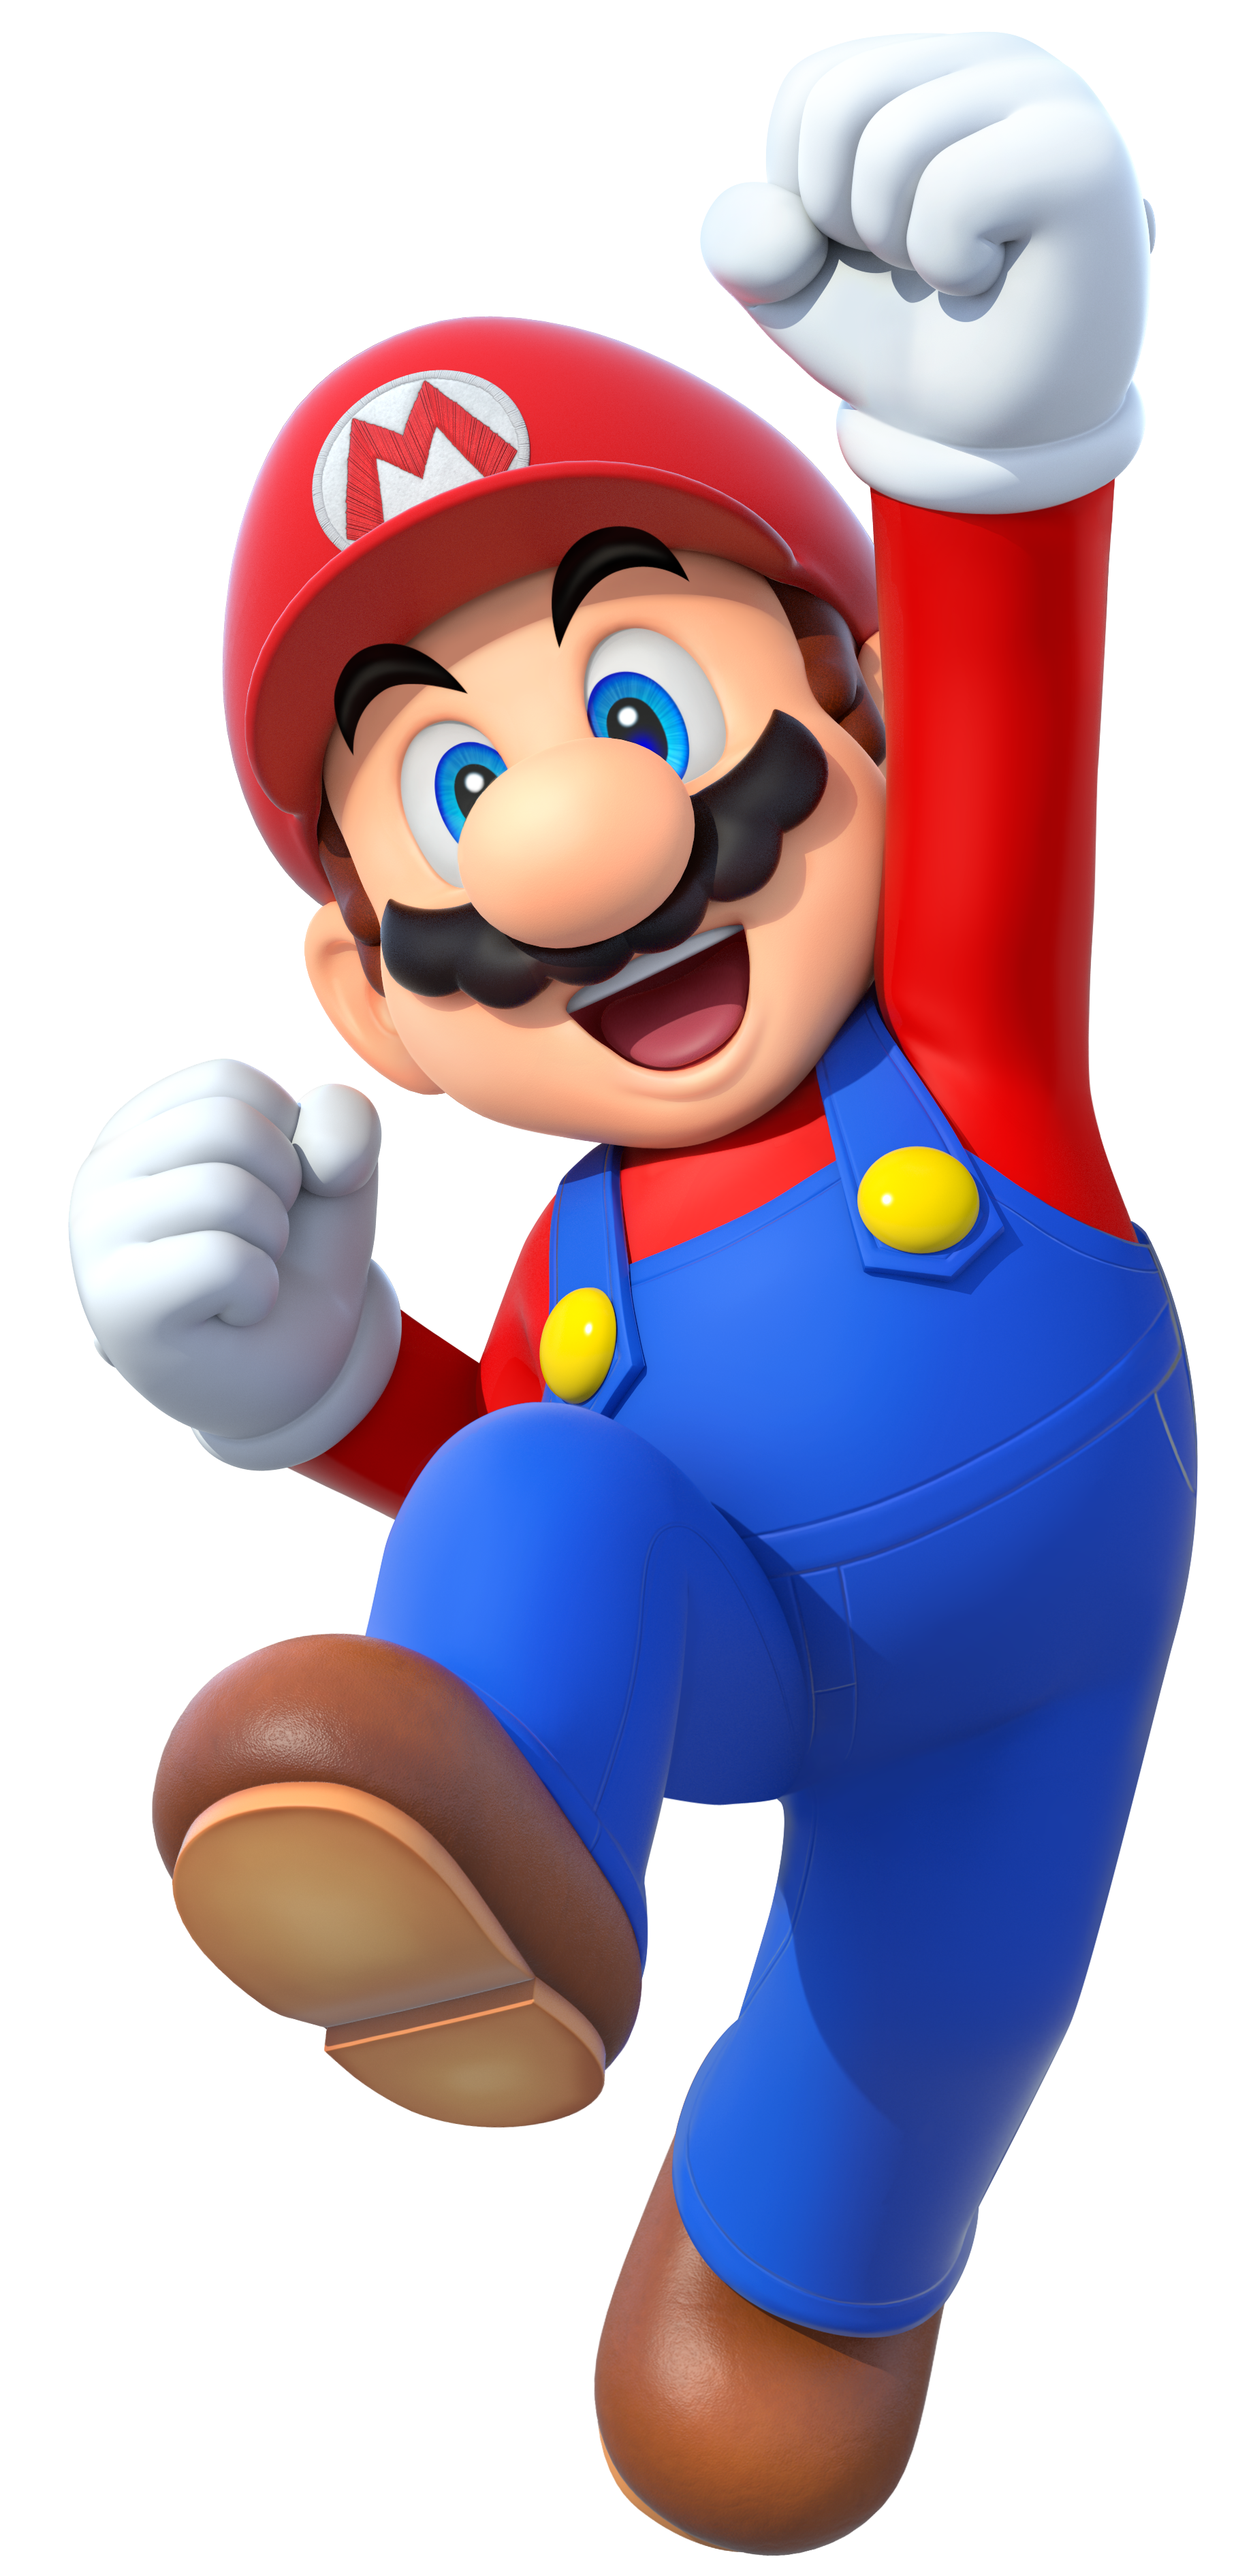 Free download of Mario PNG in High Resolution